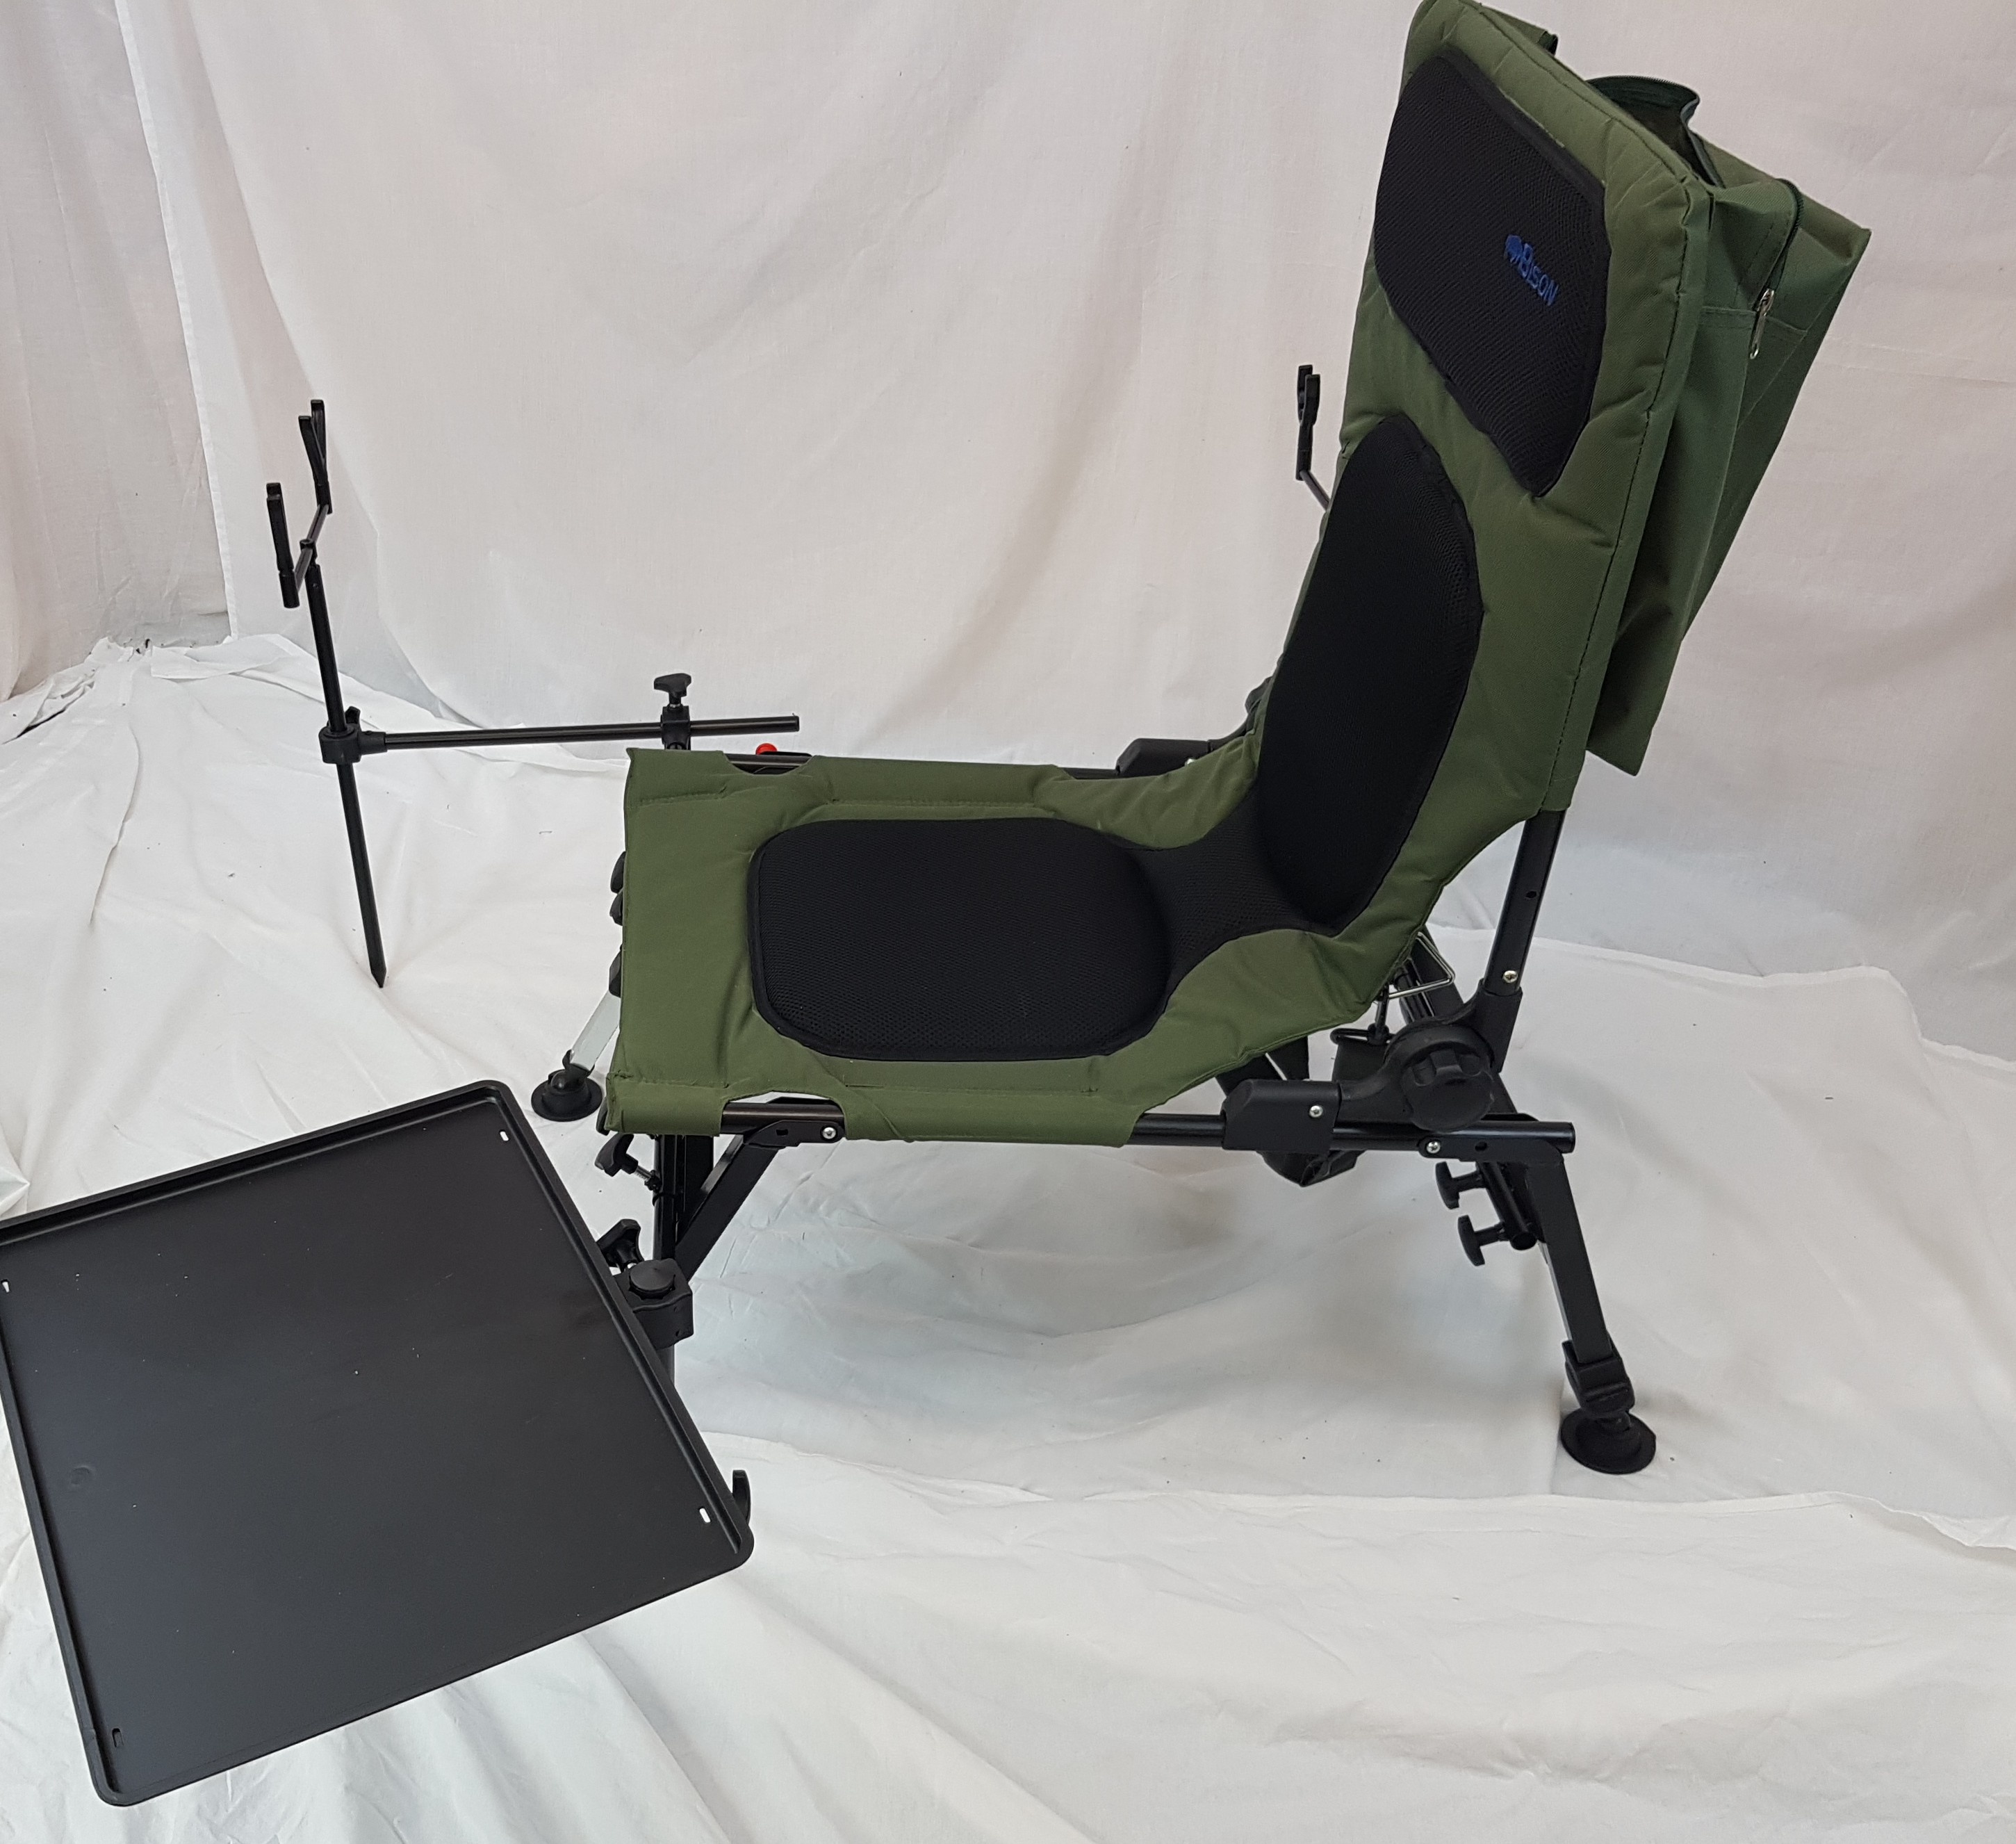 fishing chair tent dallas cowboys bean bag bison delux carp station rod pod bivvy